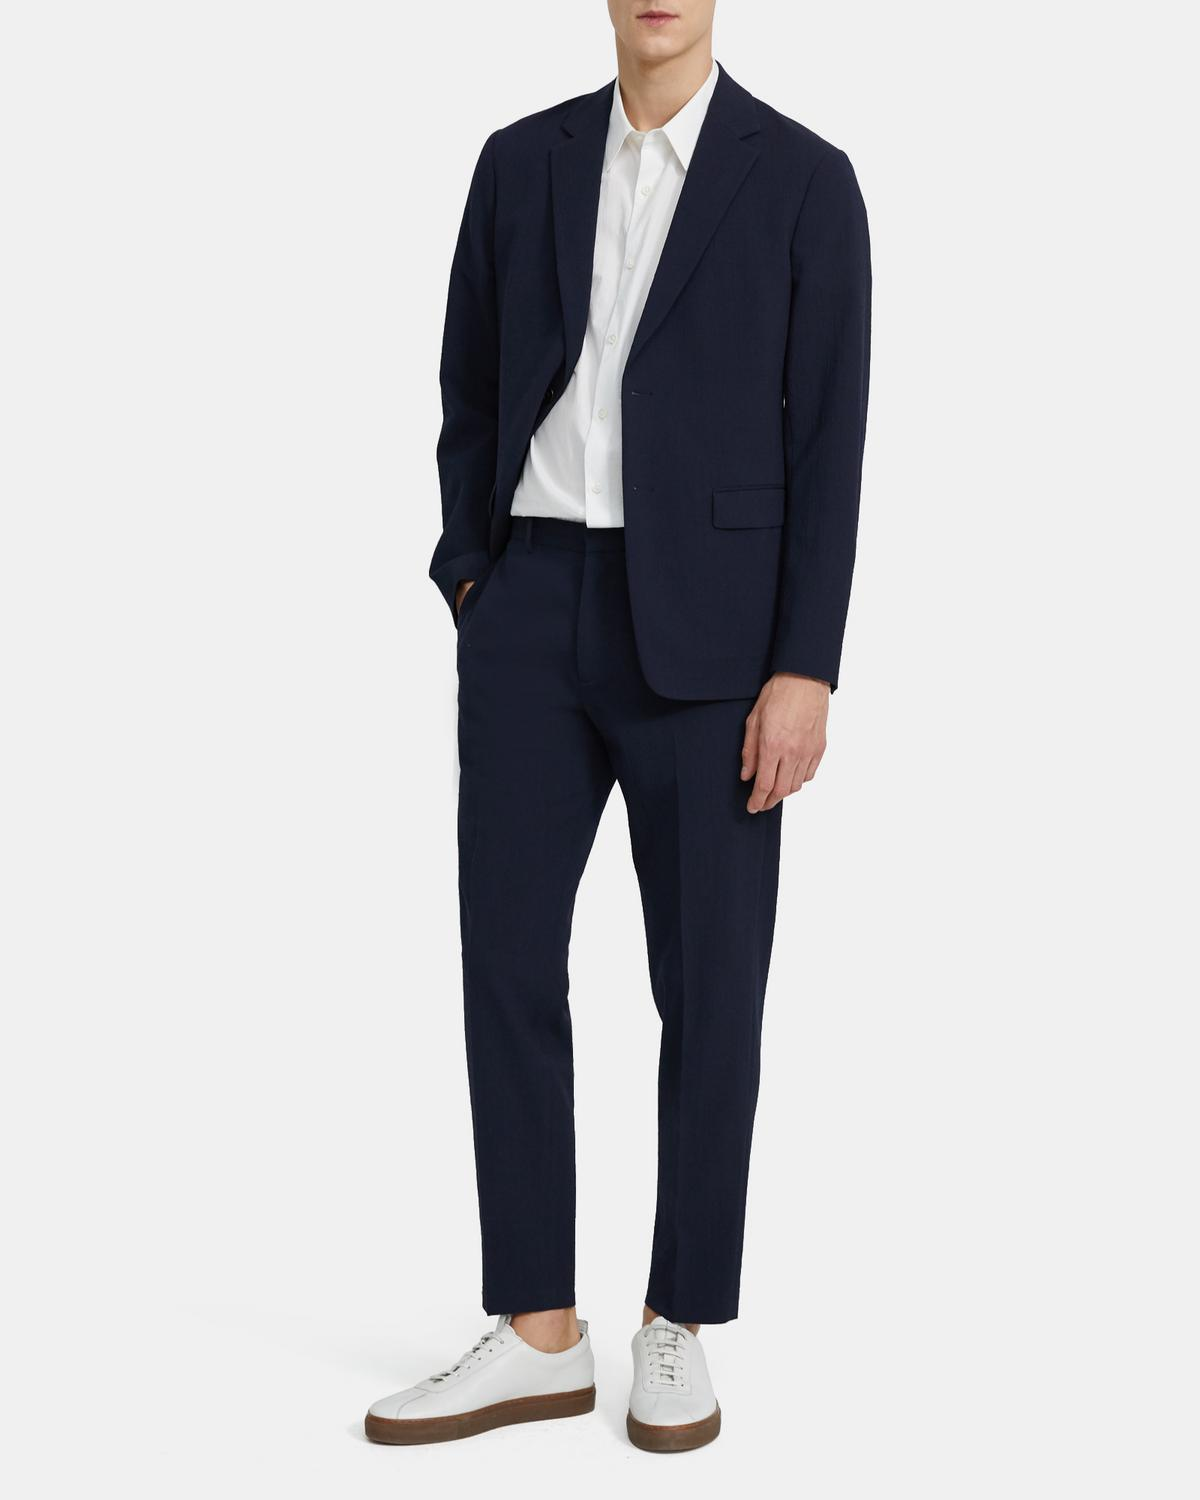 Curtis Pant in Seersucker Stretch Wool